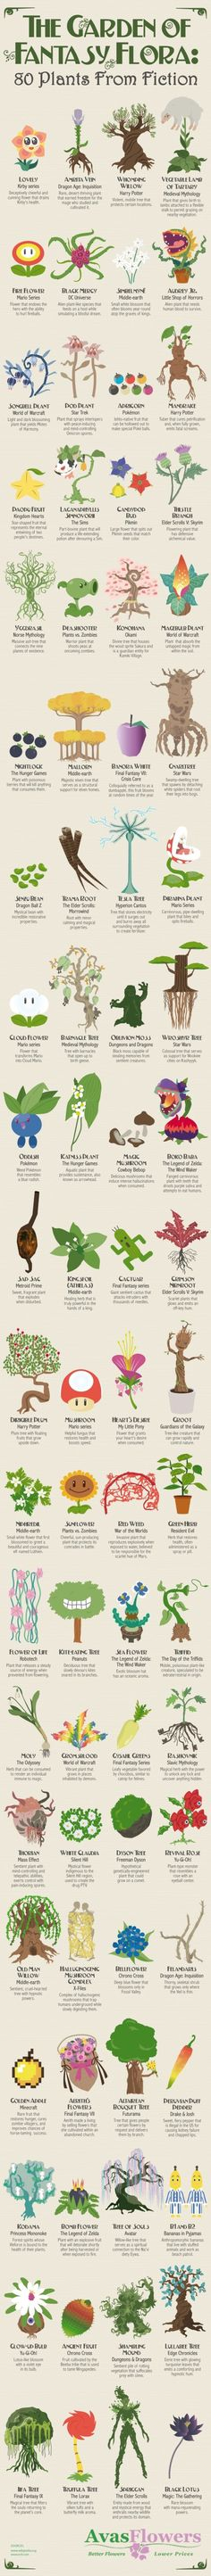 #infographic lists most iconic fictional plants - from Harry Potter, The Hunger Games & more